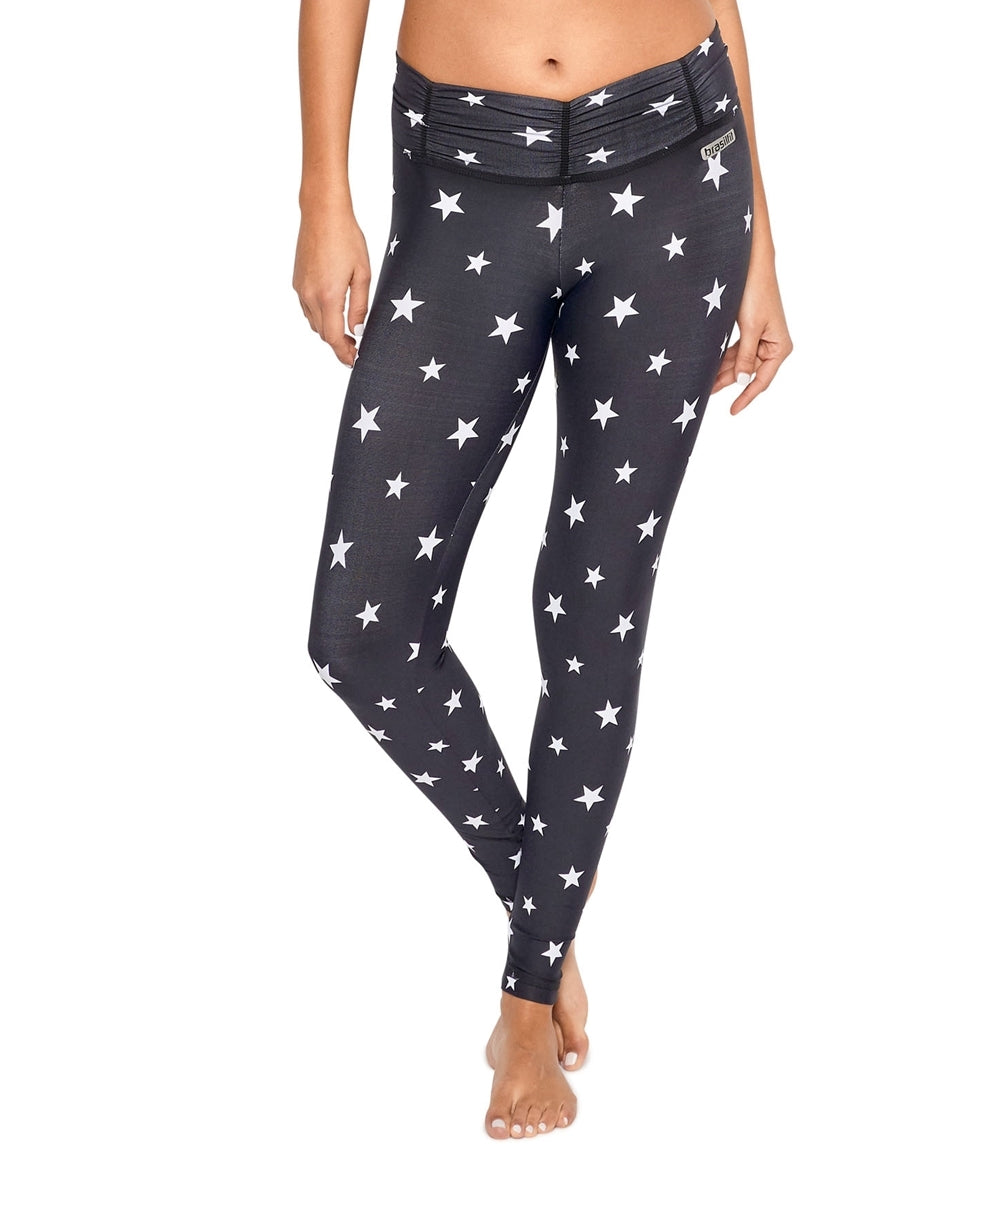 Full Length Legging Super Star